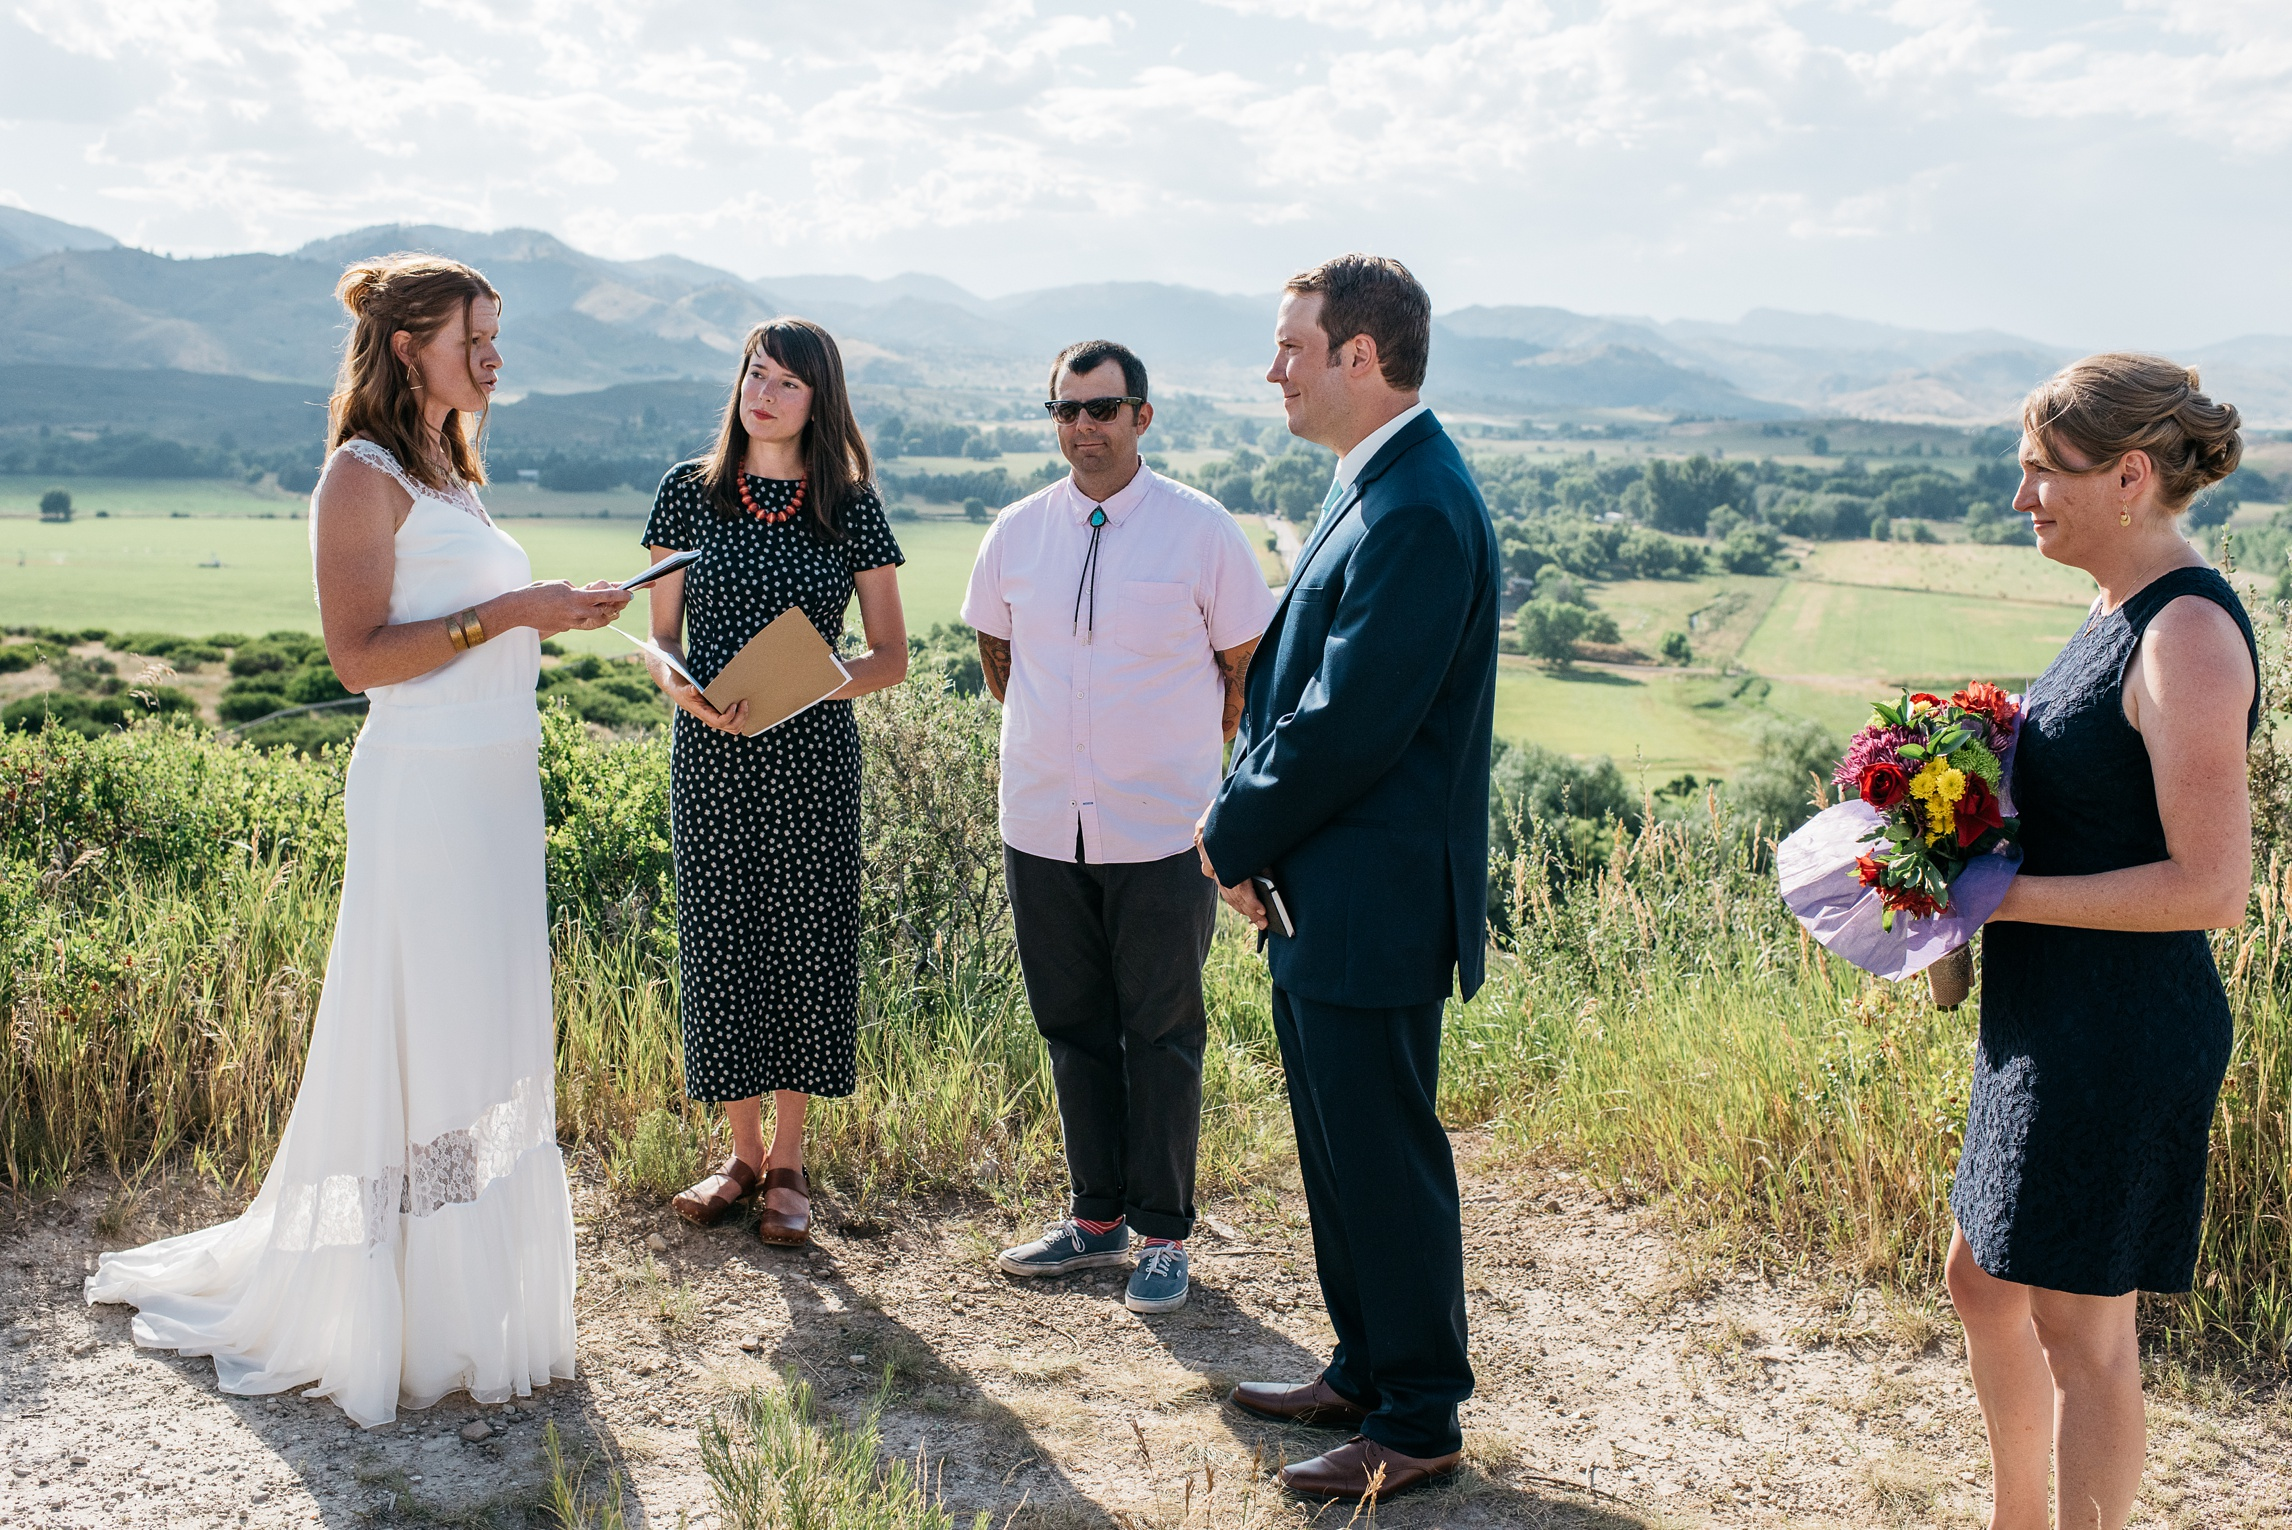 A bride reads her vows at Bingham Hill outside Fort Collins, Colorado. Wedding photography by Sonja Salzburg of Sonja K Photography.